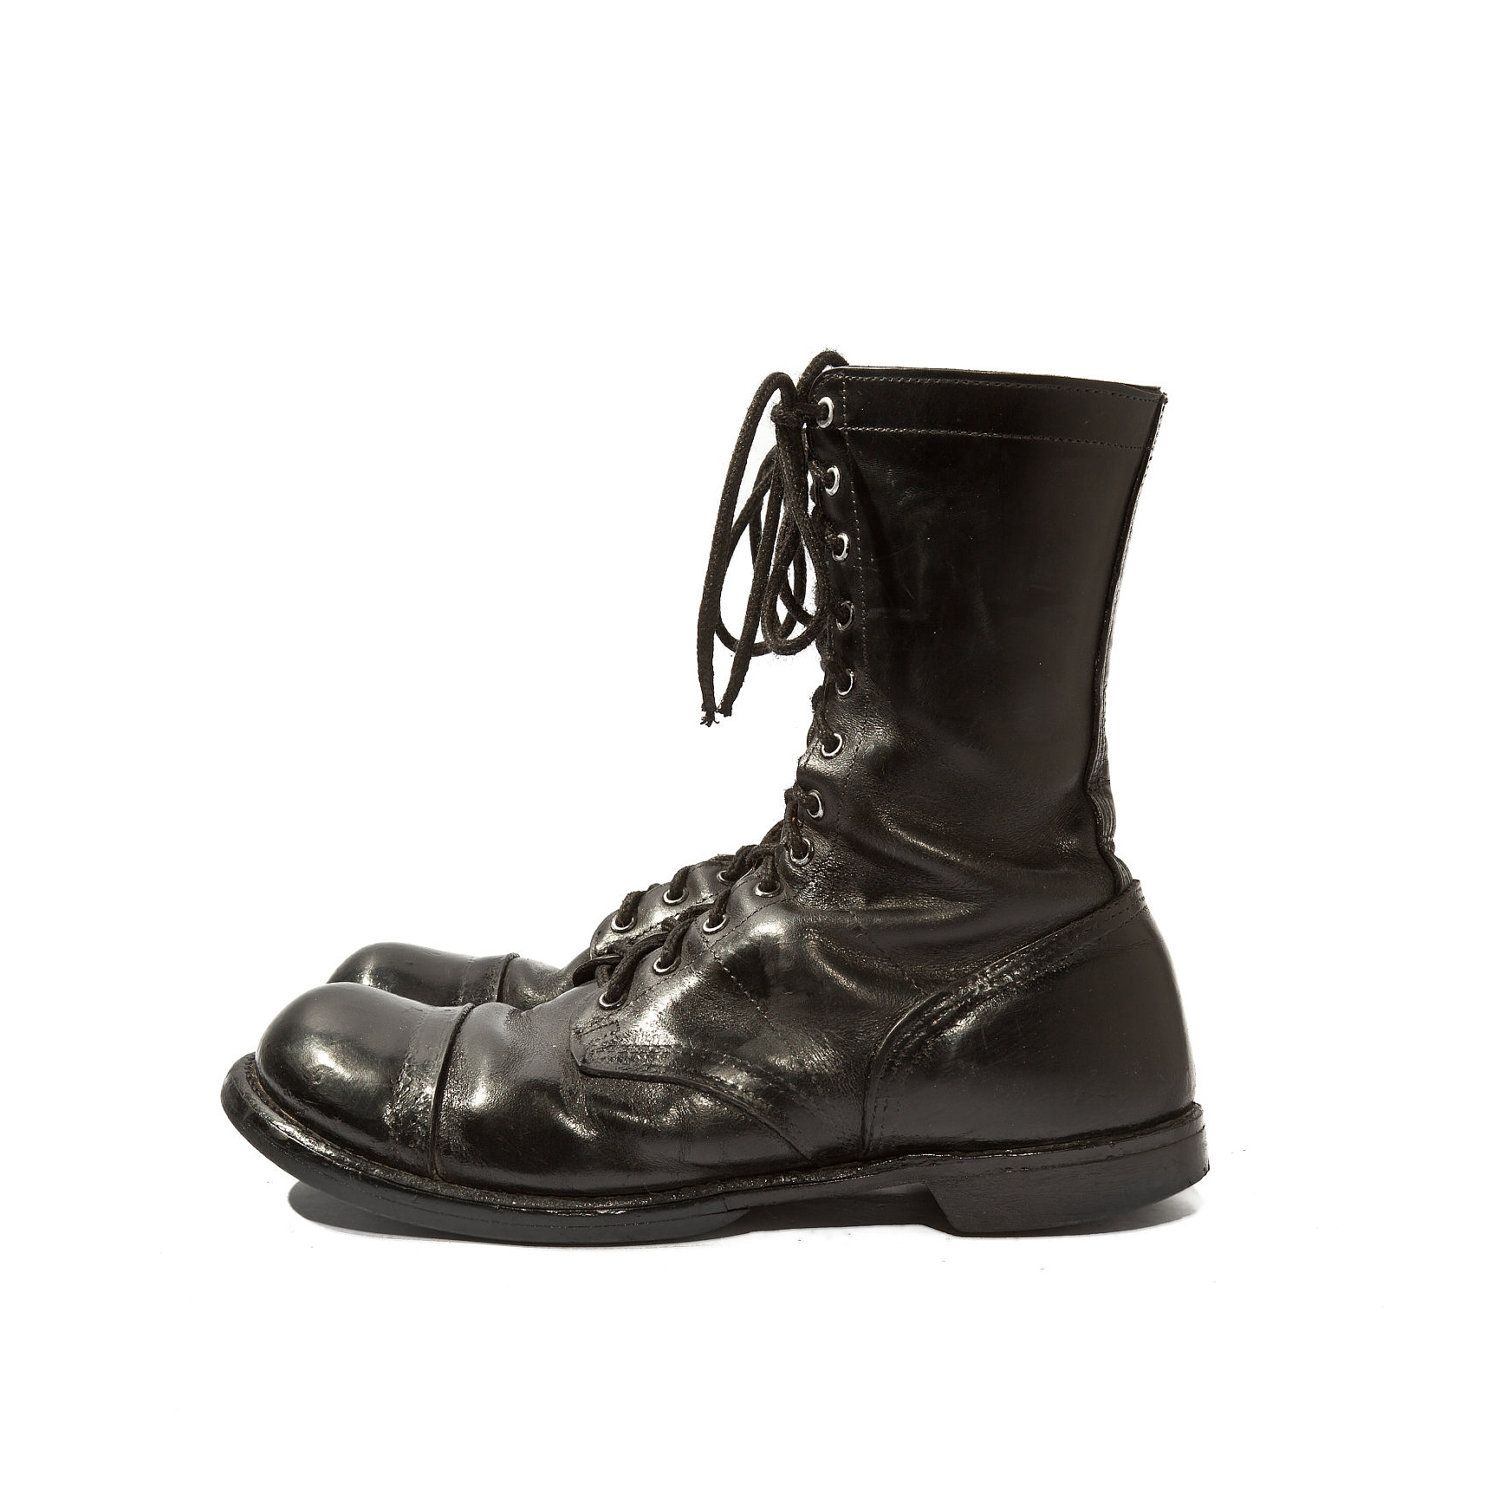 Combat Boots Corcoran Military Paratrooper Men's size 12